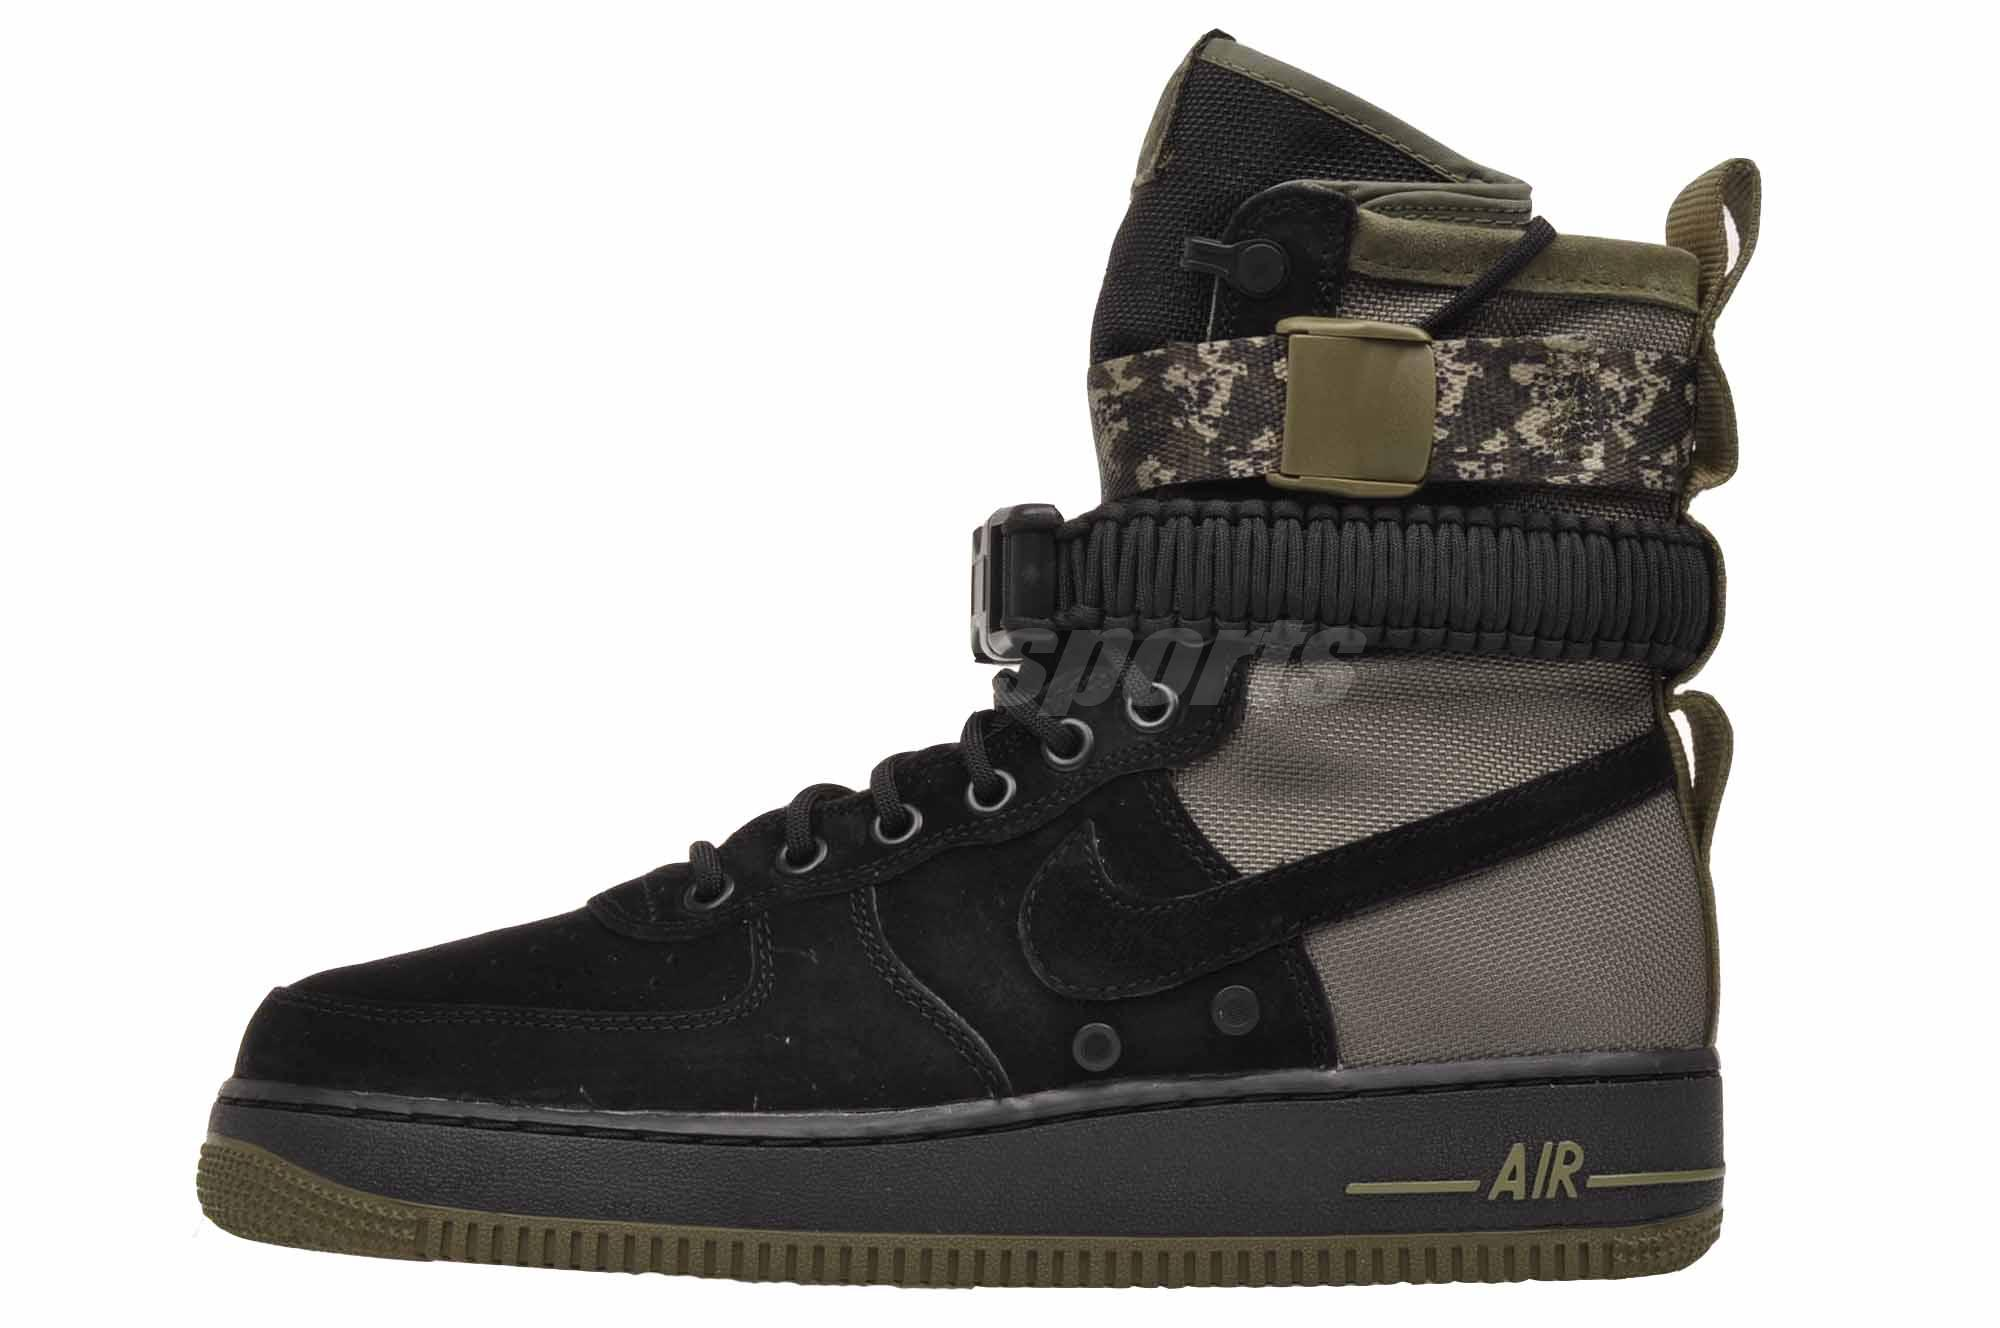 38215dab21 Nike SF AF1 Casual Air Force 1 Special Forces Mens Boots Shoes 864024-004